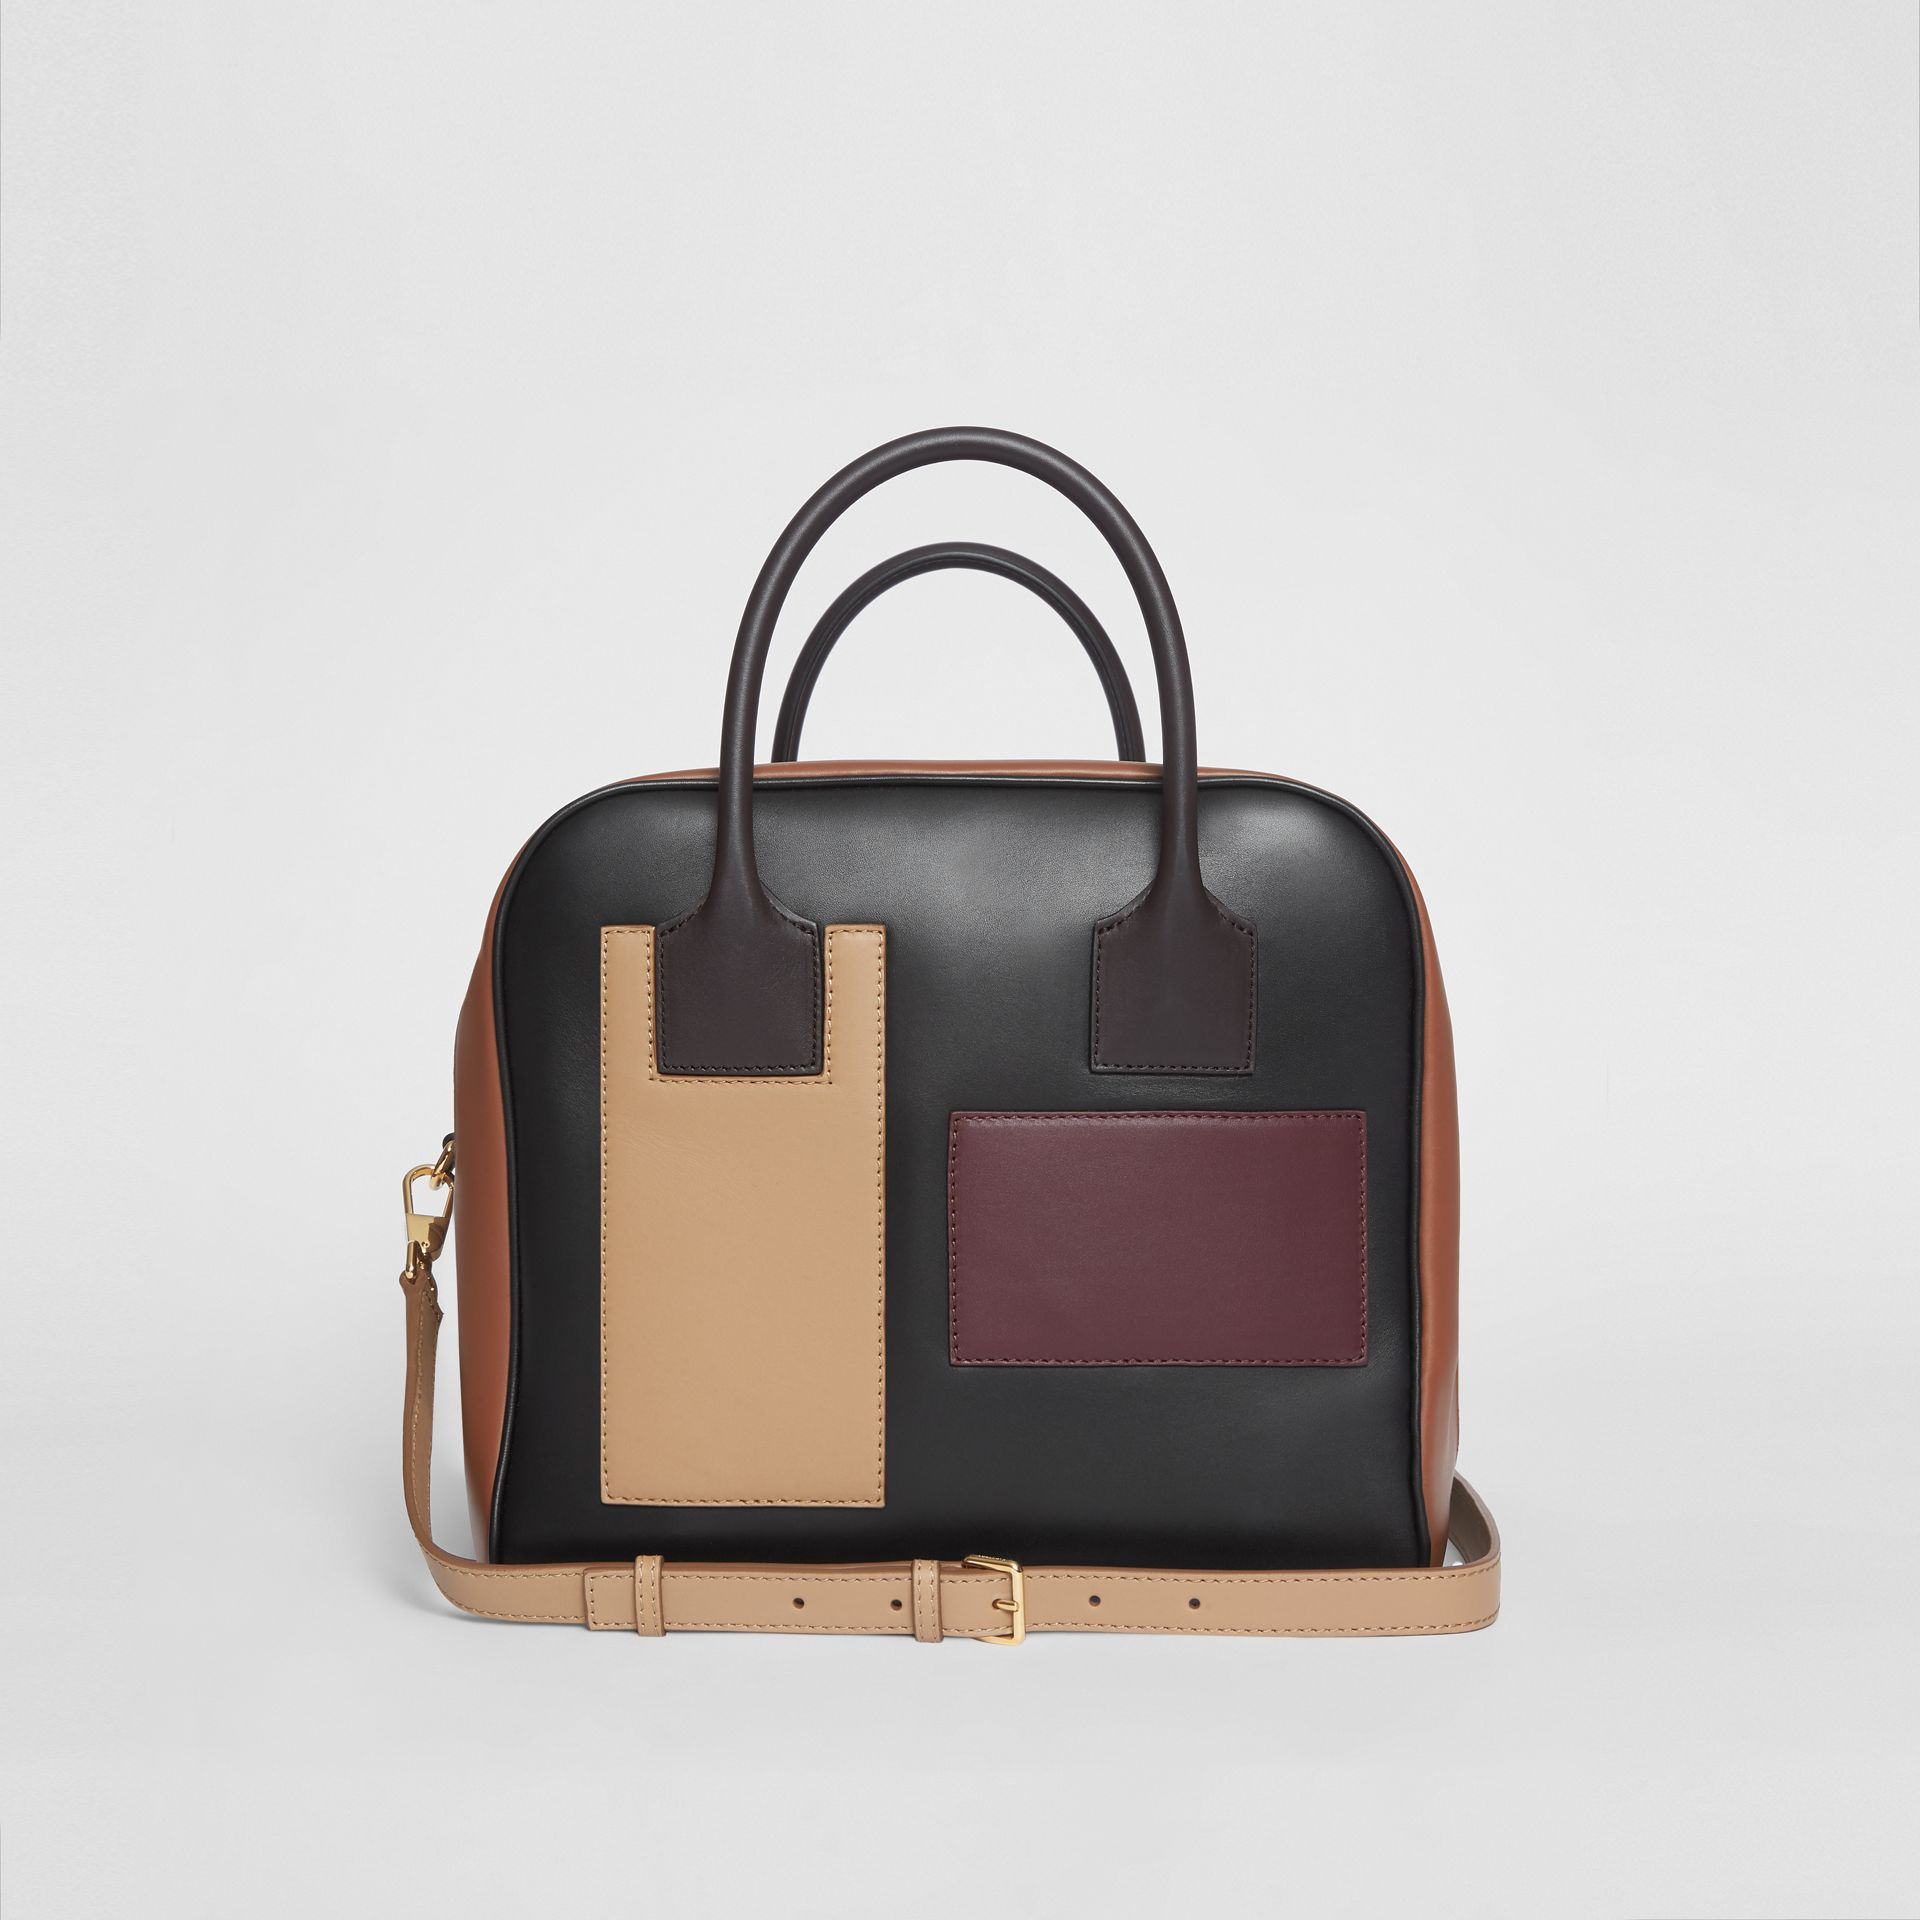 Medium Panelled Leather Cube Bag in Black - Women | Burberry - gallery image 7